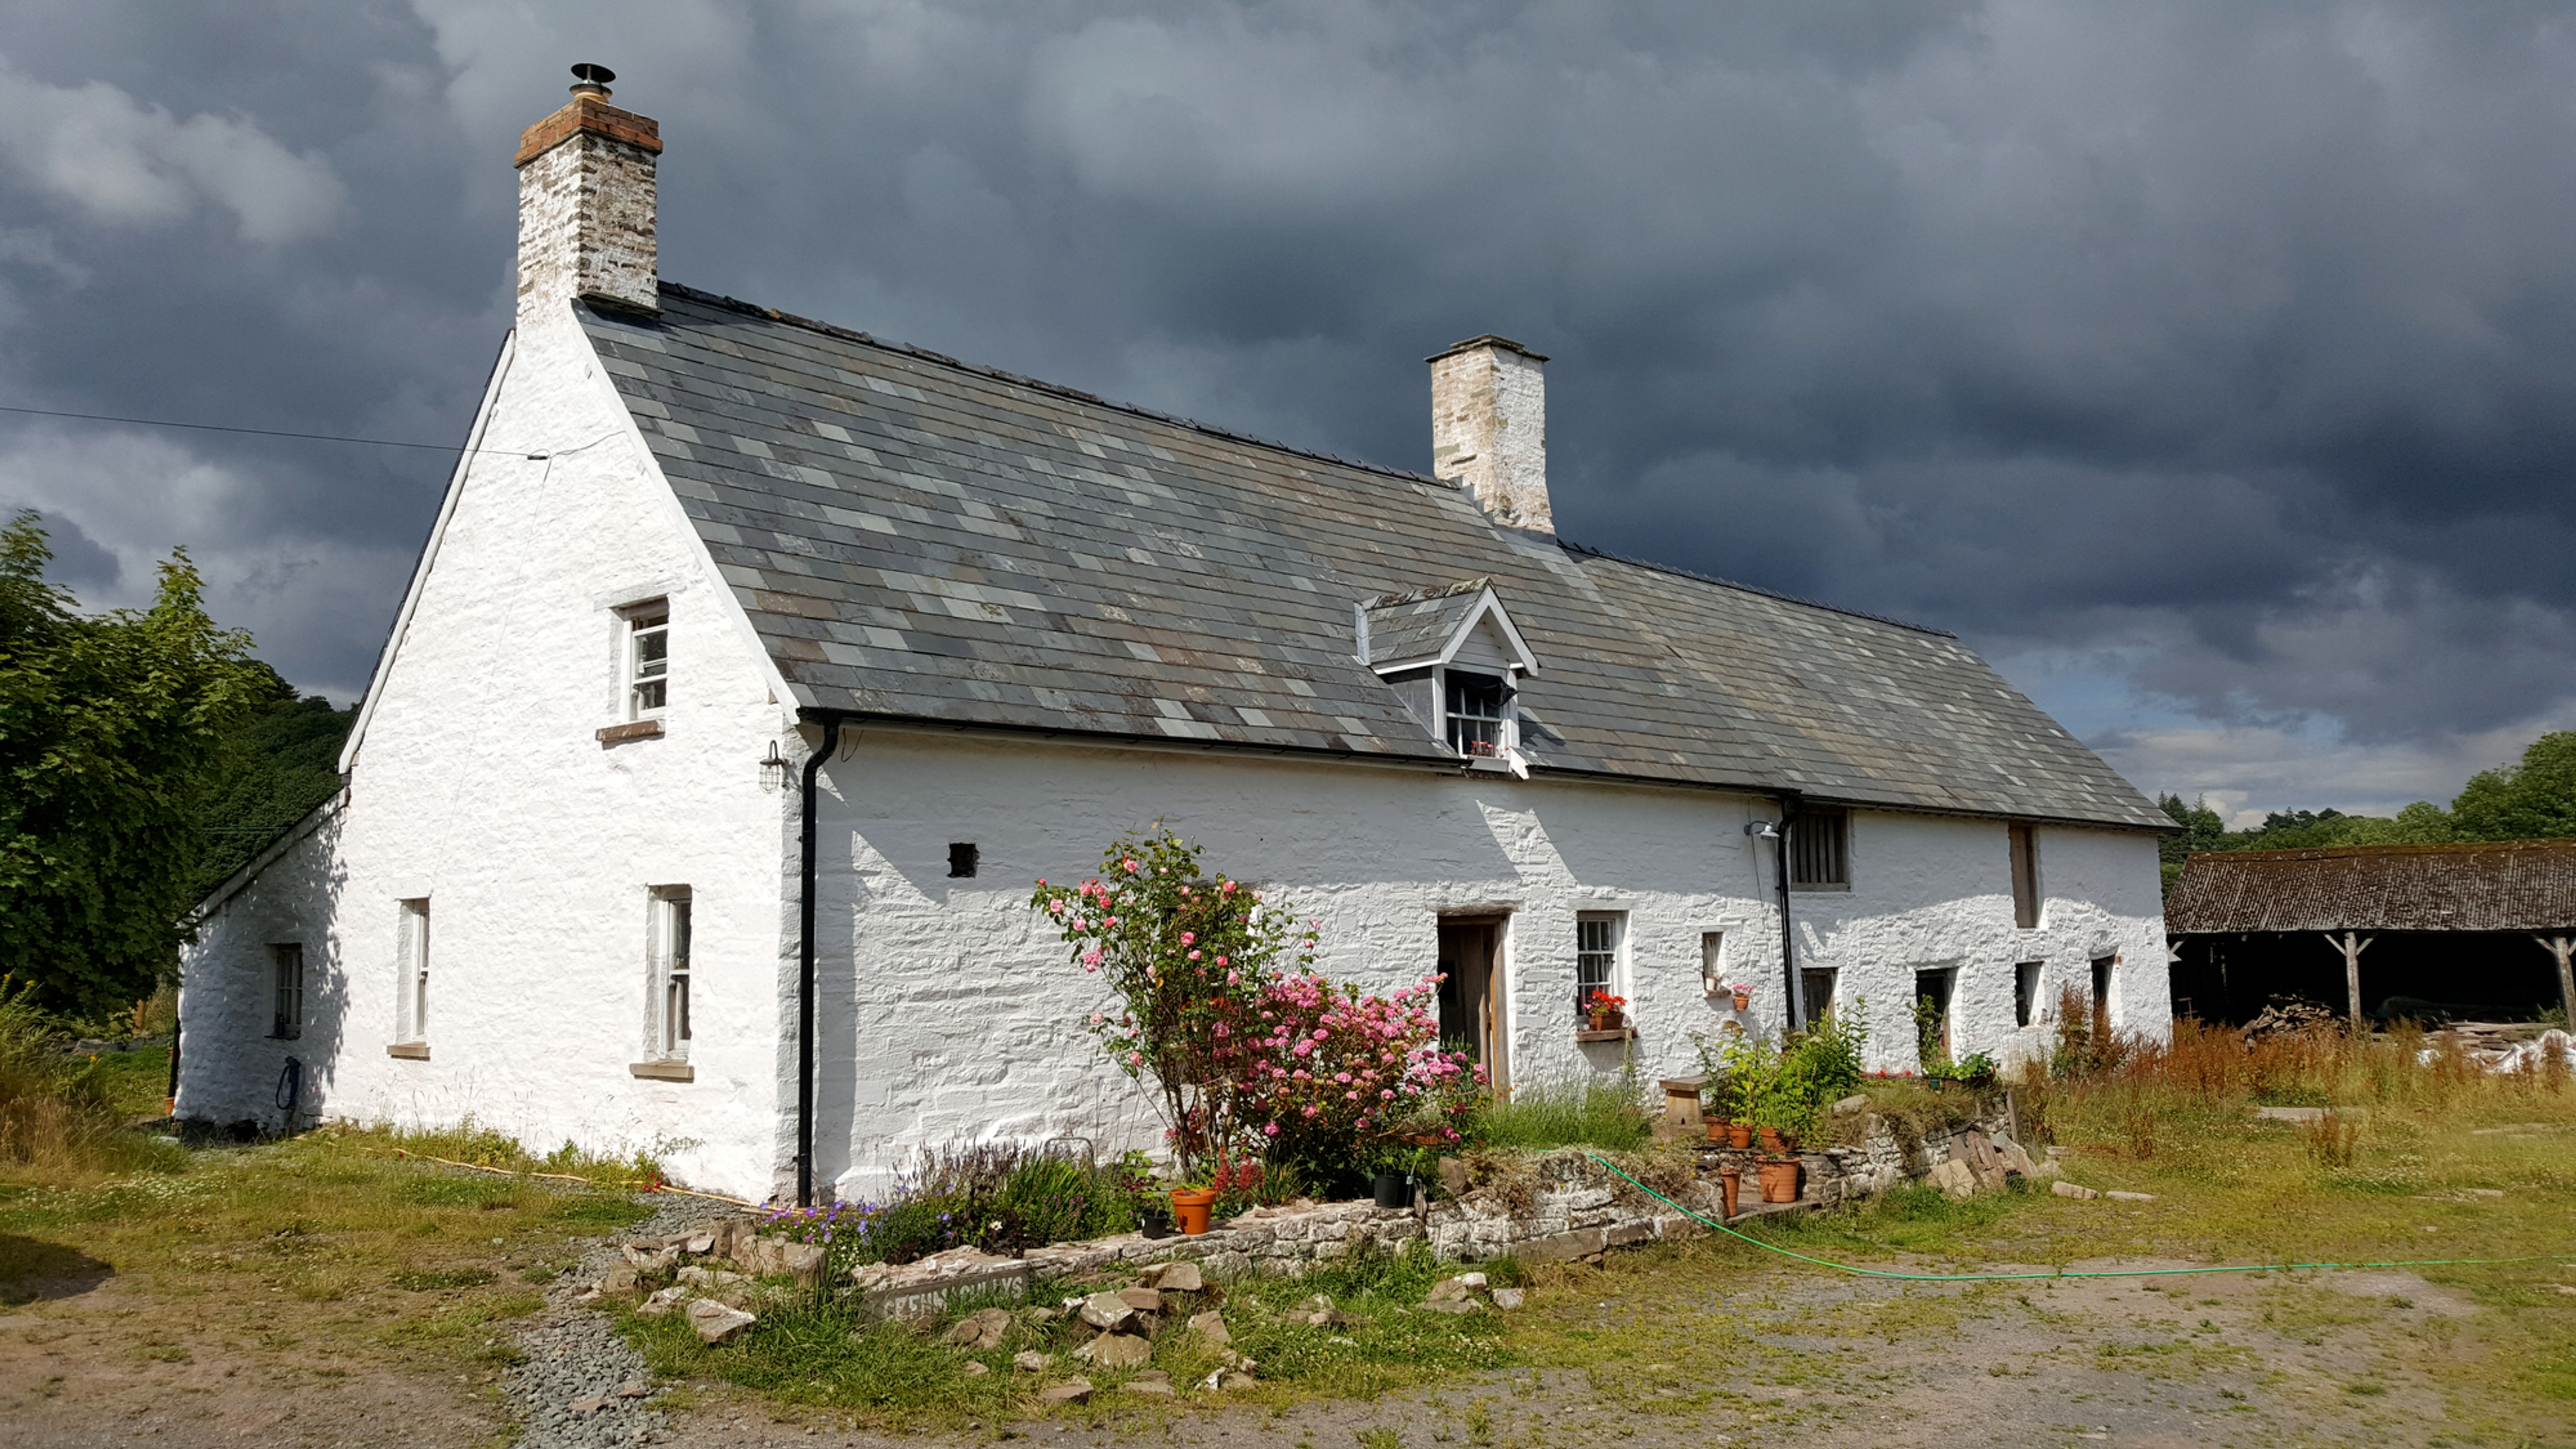 Consultation at the Welsh Longhouse